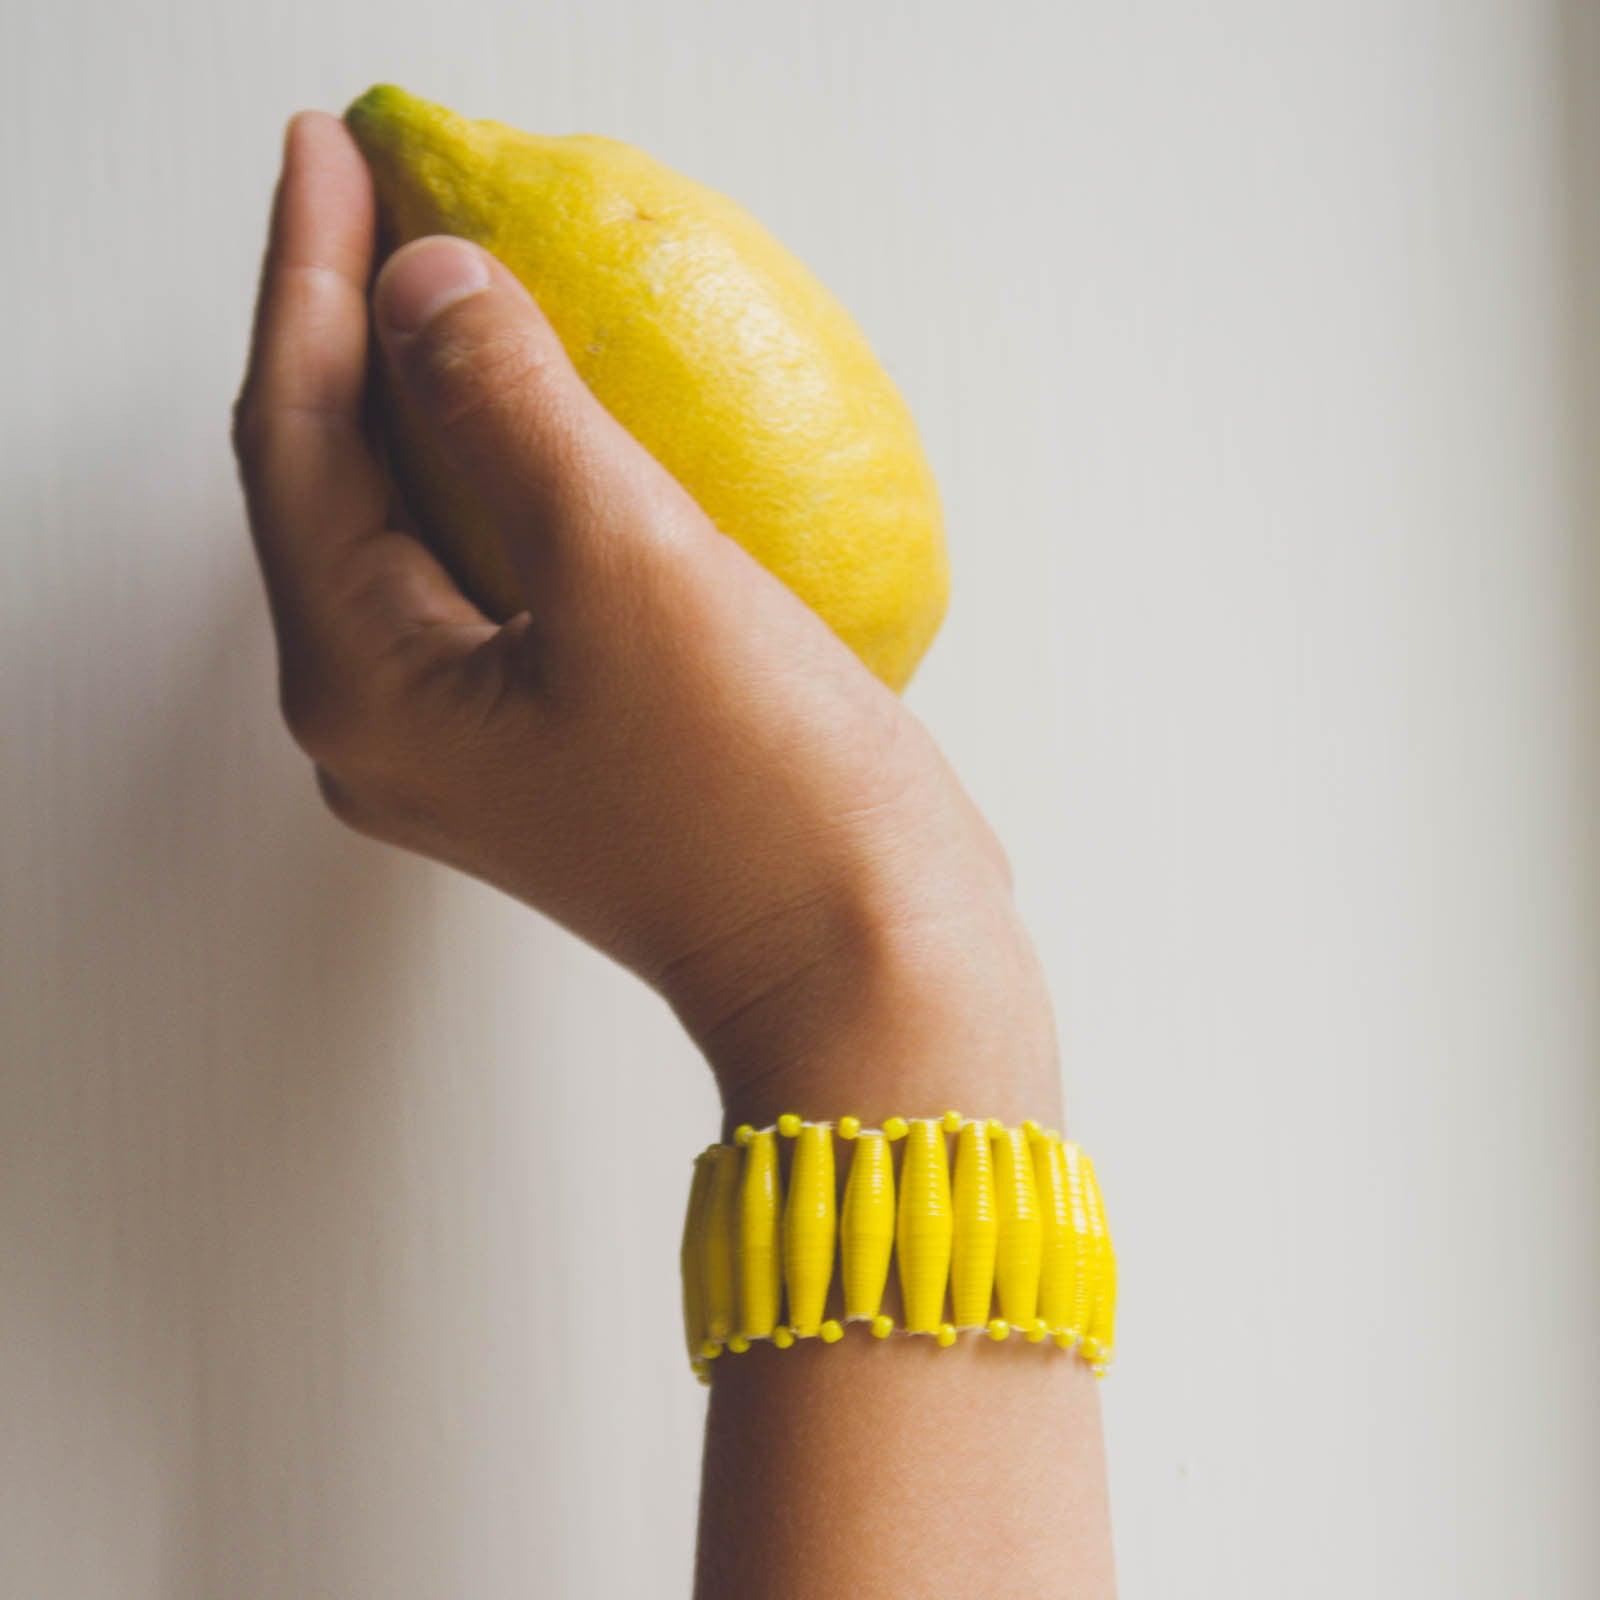 Yellow hand made design paper bead bracelet made out of recycled paper in Uganda by principles of fair trade, ethical and sustainable fashion, empowering women of post war area, by Finnish / Scandinavian brand, Agulu Paper Beads. Eettinen keltainen käsintehty design rannekoru, joka on tehty kierrätyspaperista reilun kaupan periaattein työllistämällä kehitysmaan nasia.